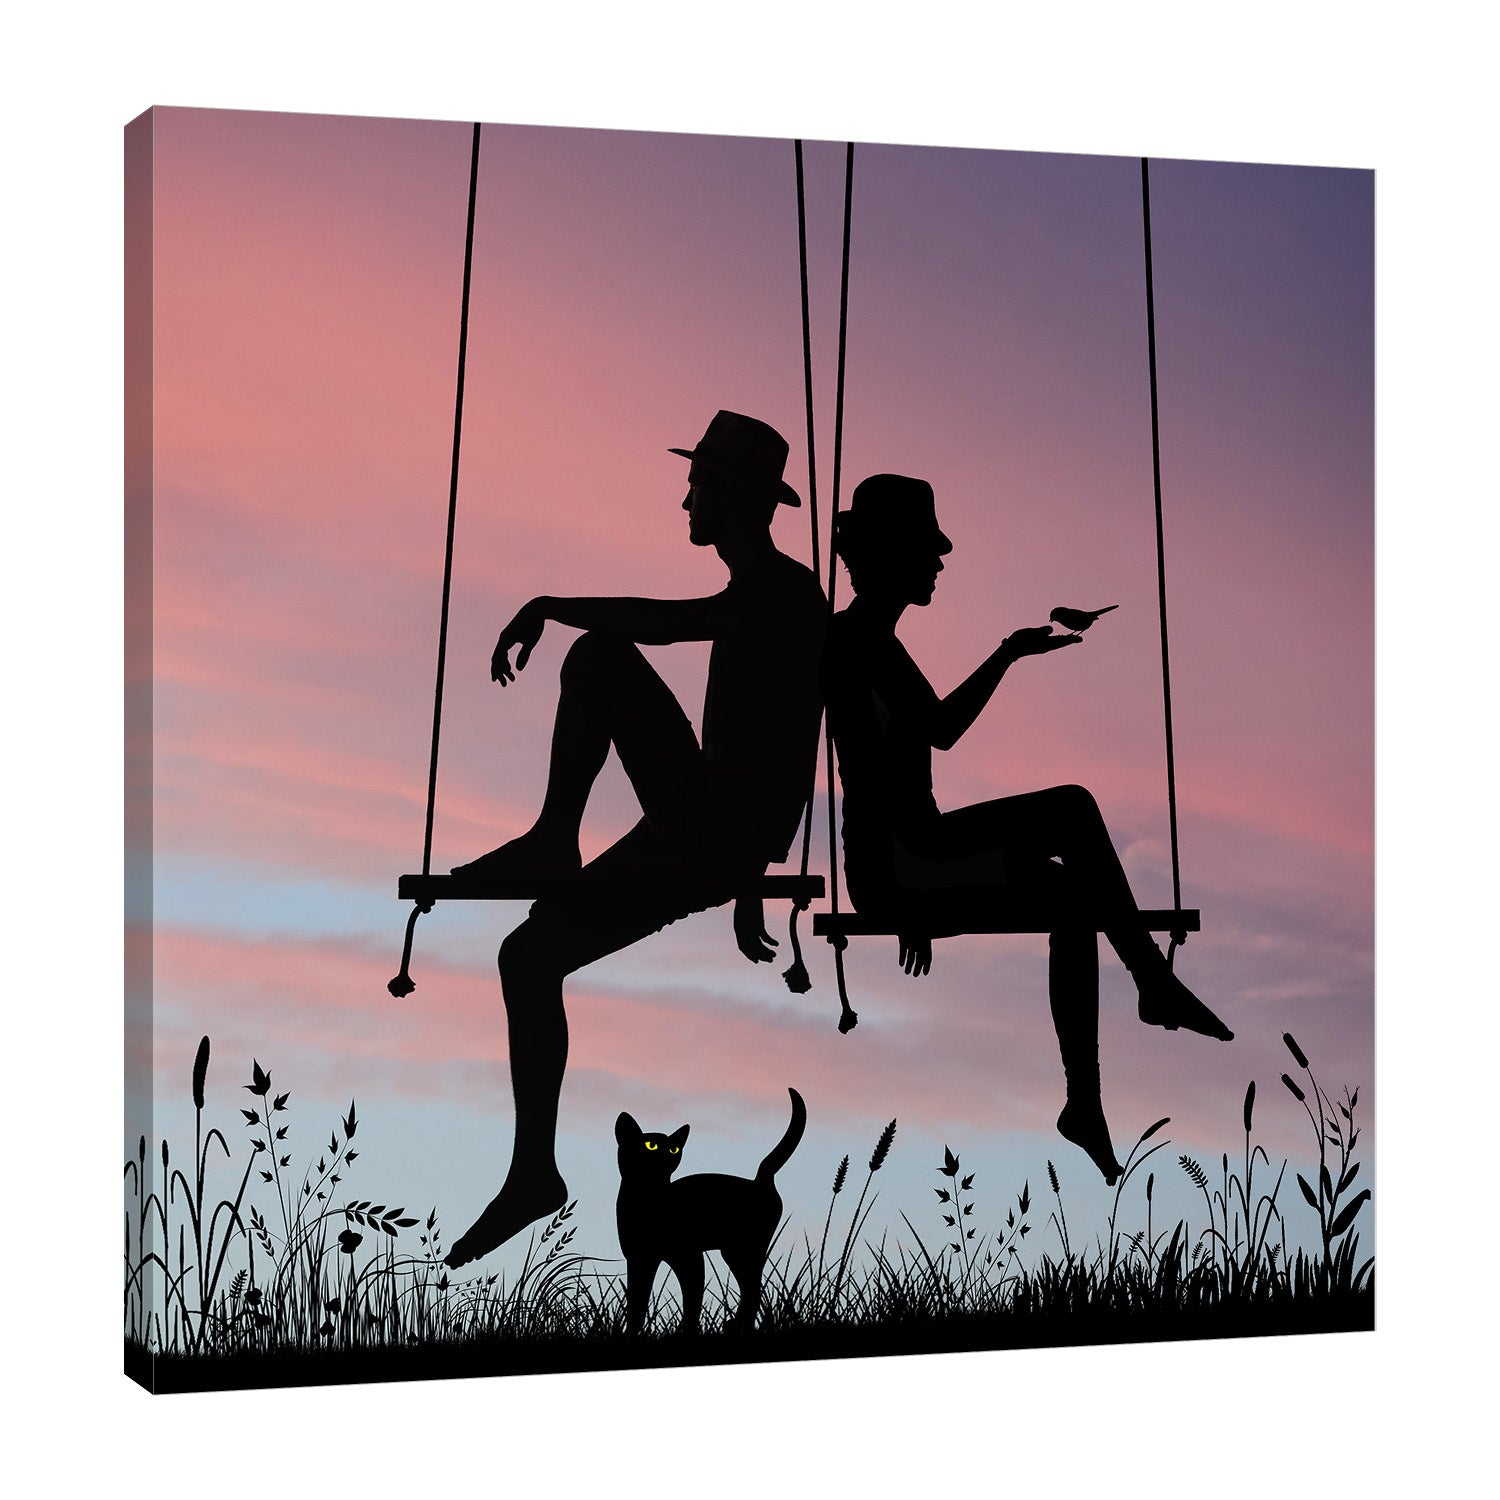 Dominic-Liam,Modern & Contemporary,People,couple,swings,silhoutte,cat,animals,Purple,Black,Blue Gray,Red,White,Gray